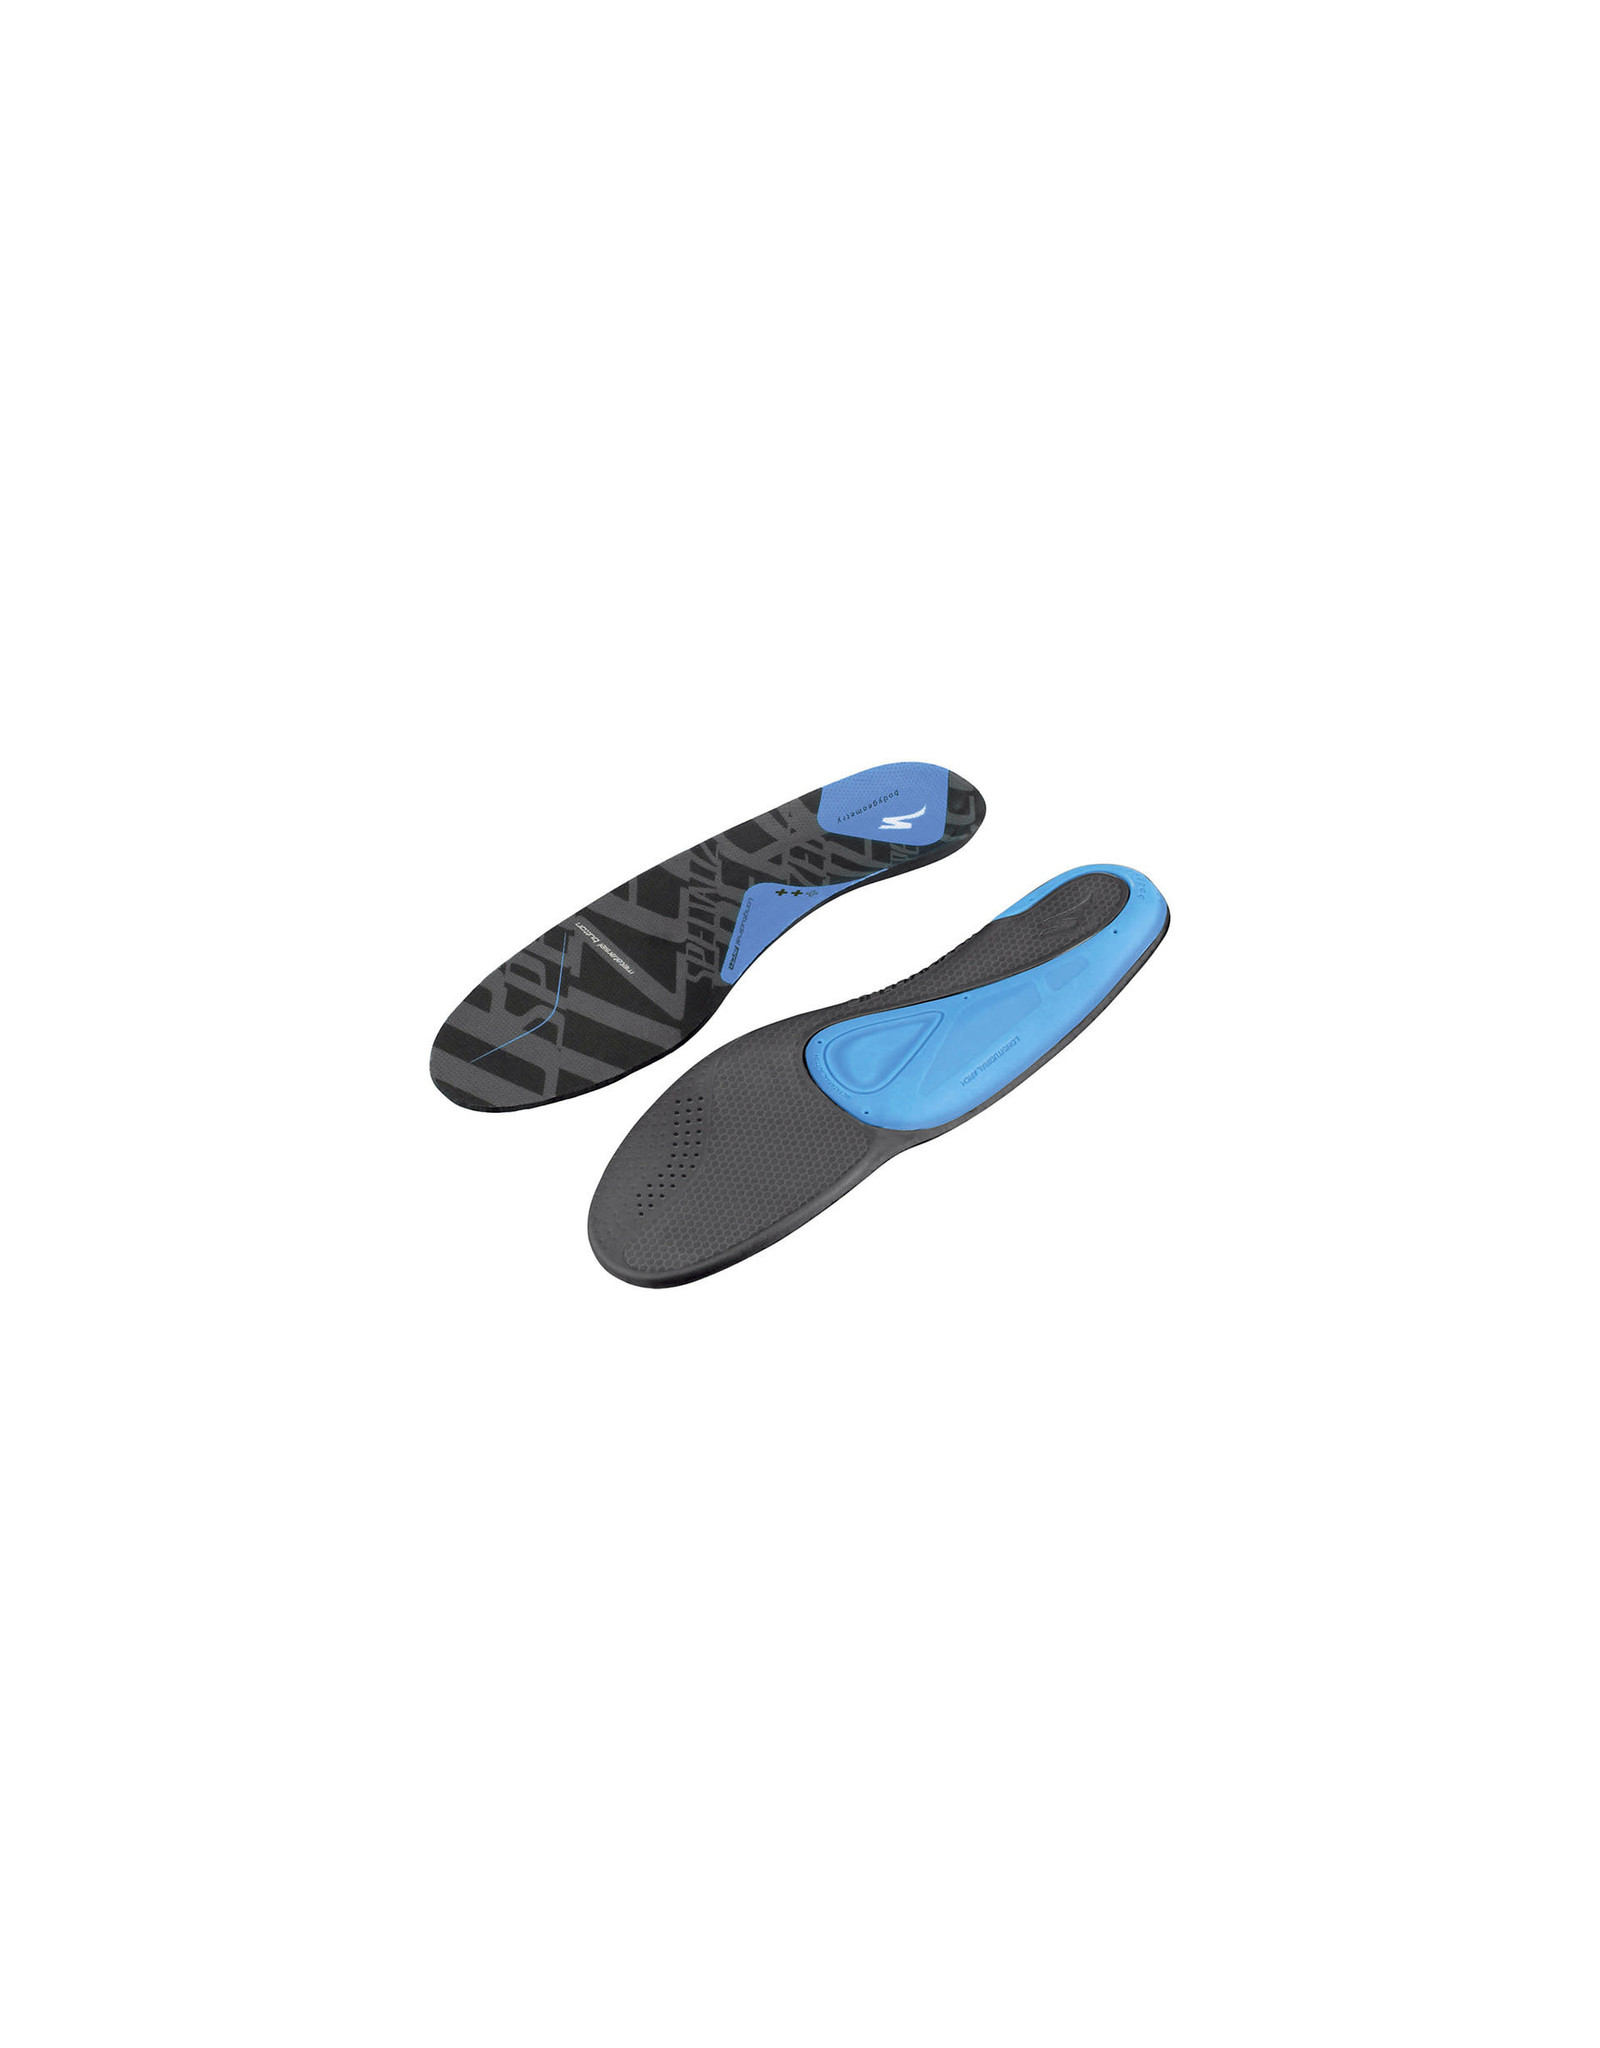 Specialized Shoe Spec Footbeds High Performance ++ Blue